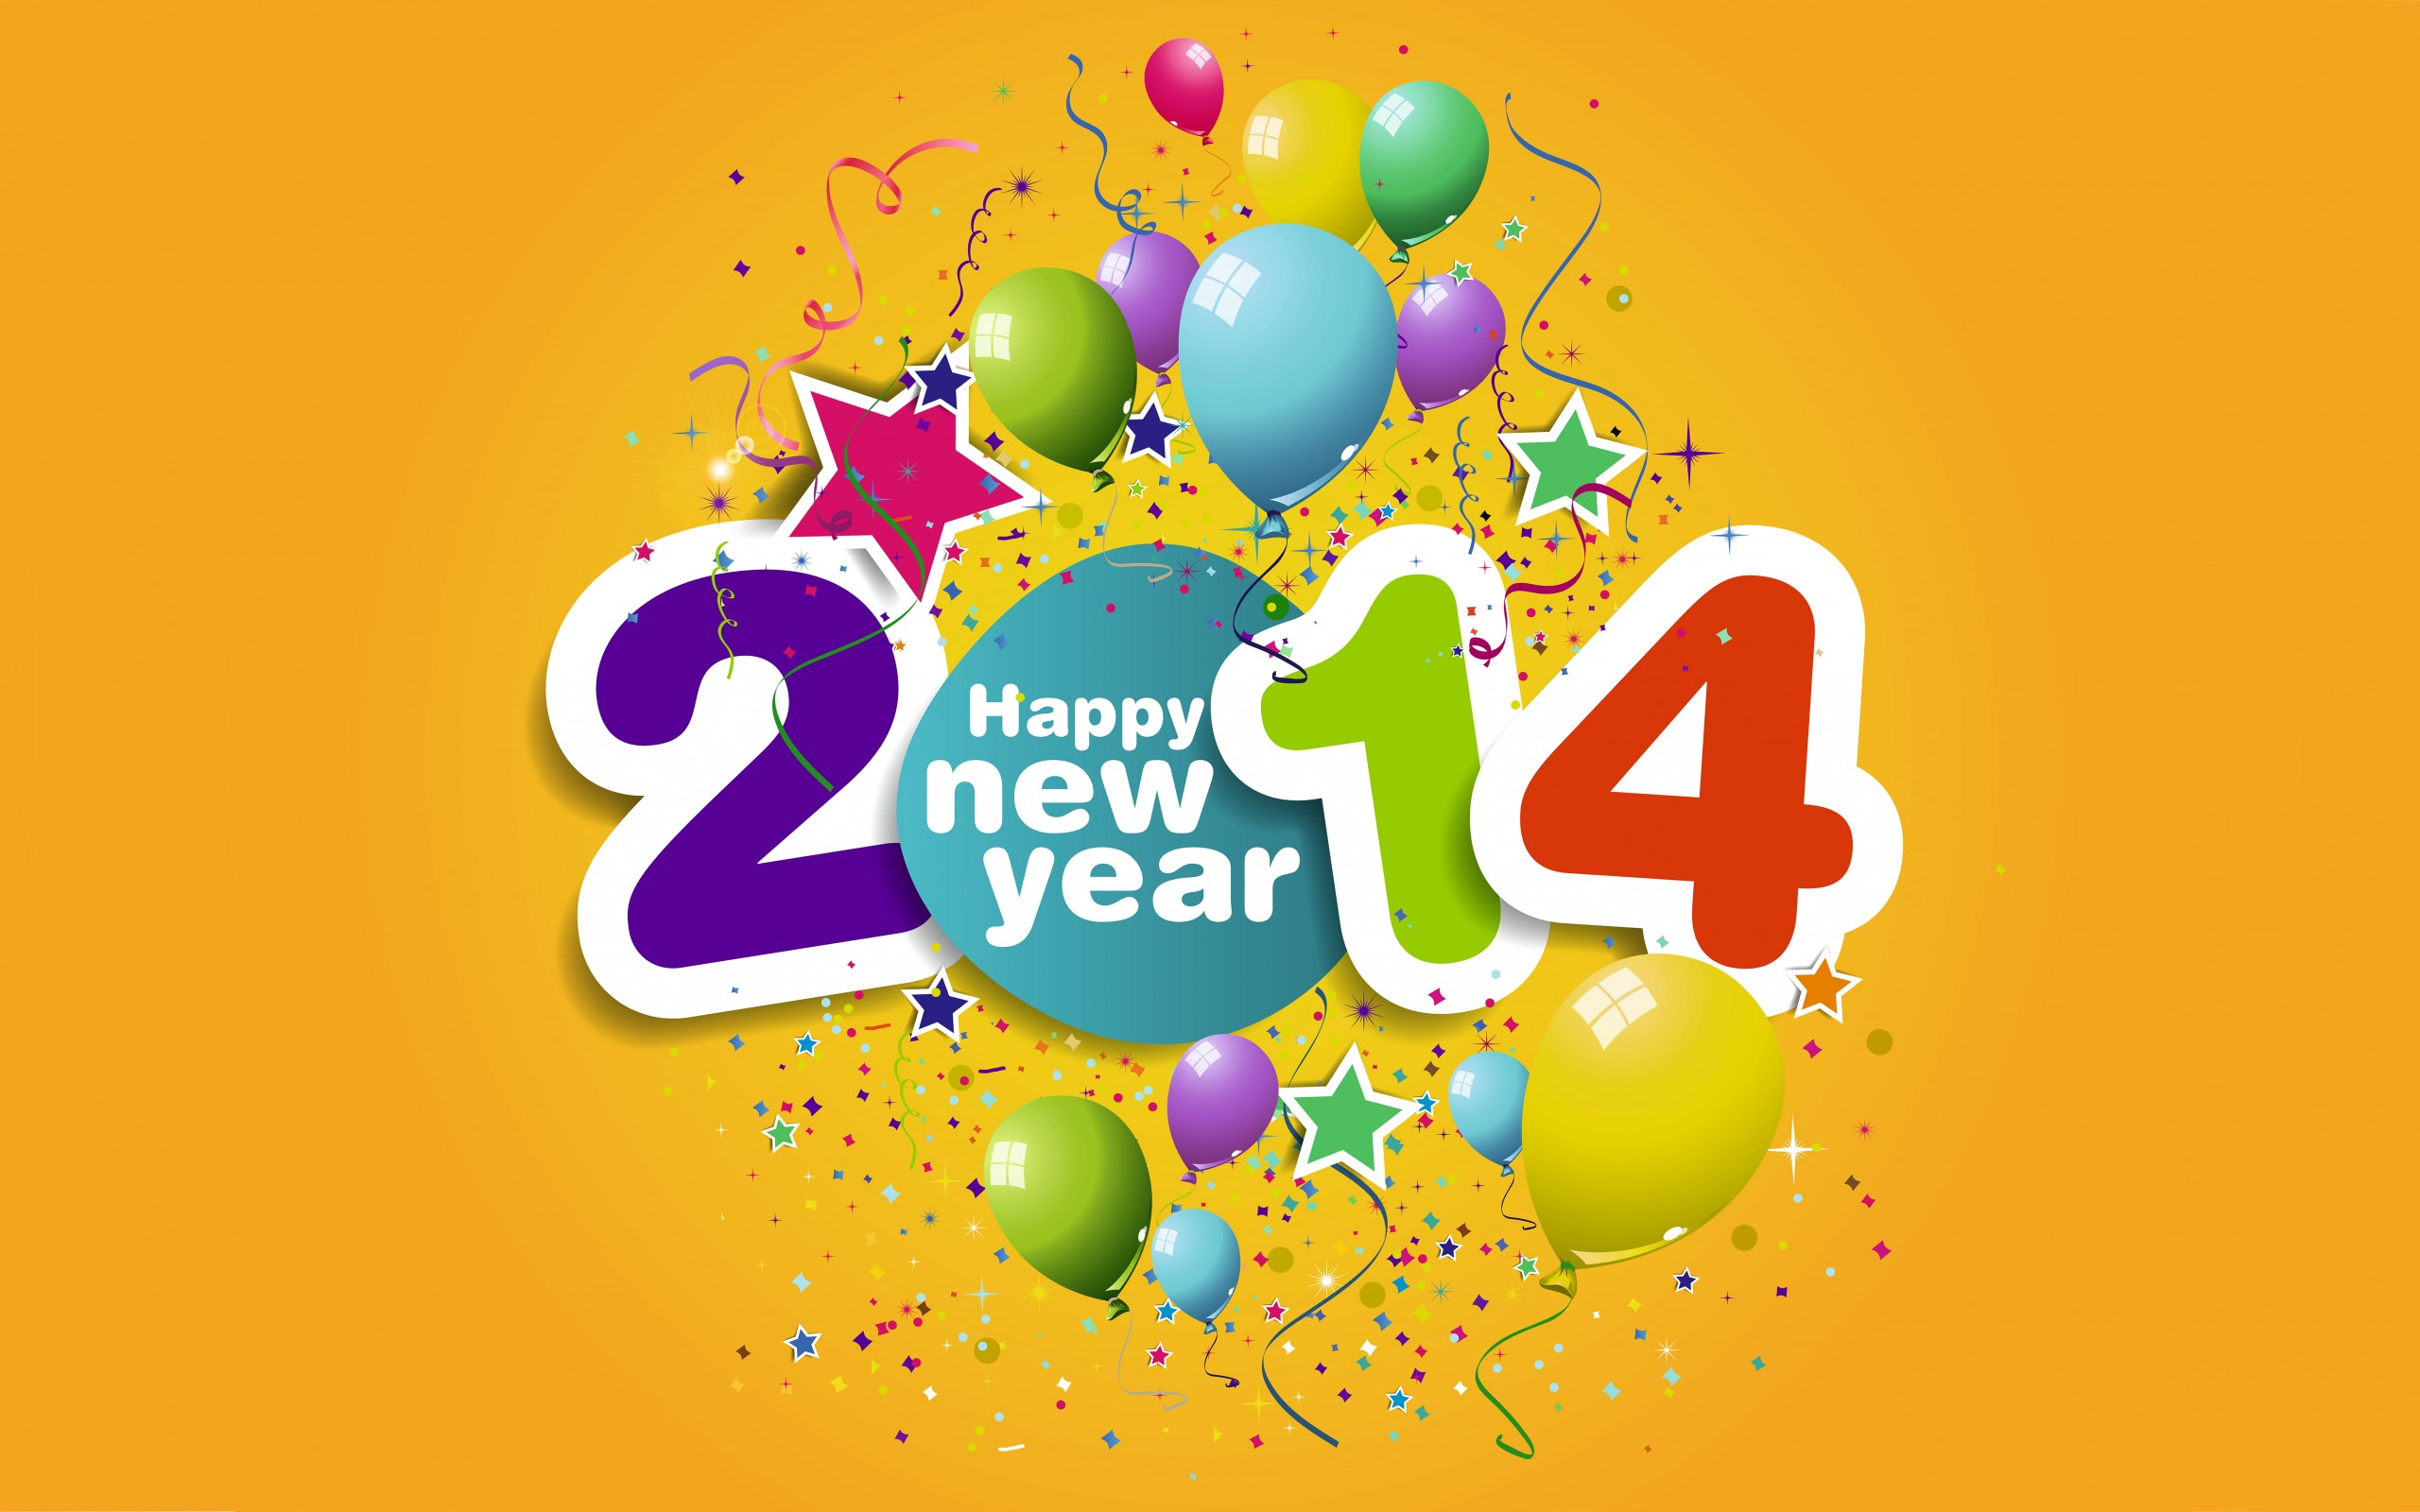 happy new year 2014 wallpapers 2560x1600 373243